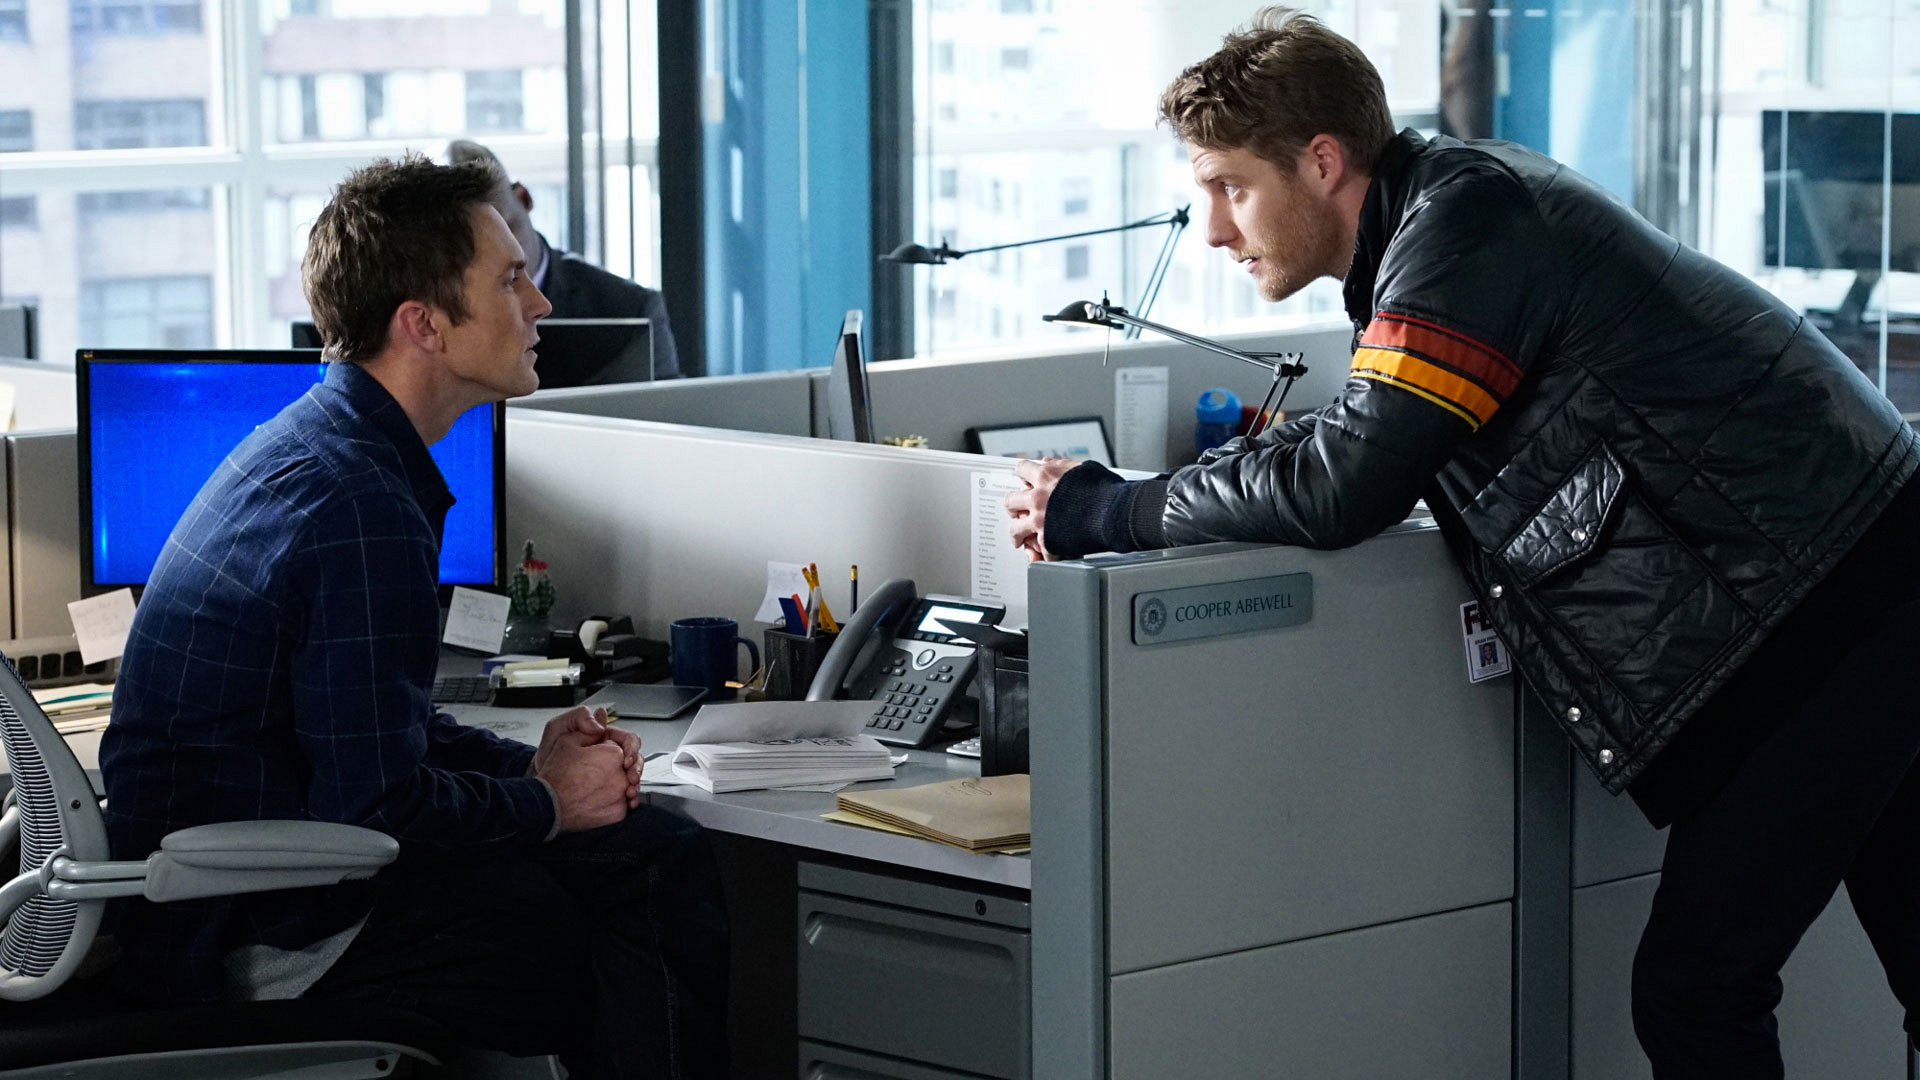 Desmond Harrington as Agent Casey Rooks and Jake McDorman as Brian Finch